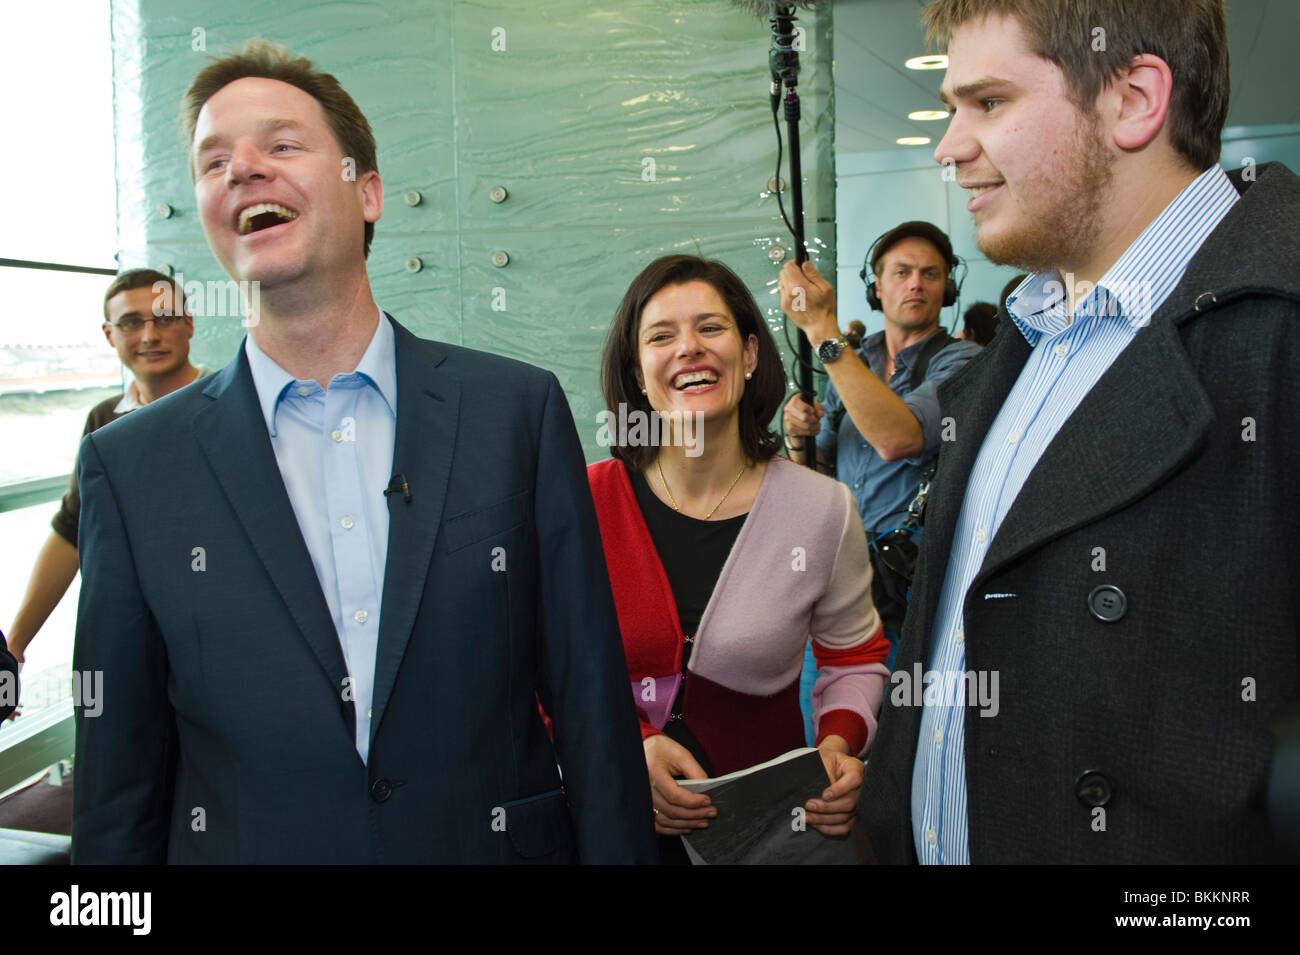 Liberal Democrats leader Nick Clegg and wife Miriam surrounded by supporters and media on campaign visit to Newport - Stock Image